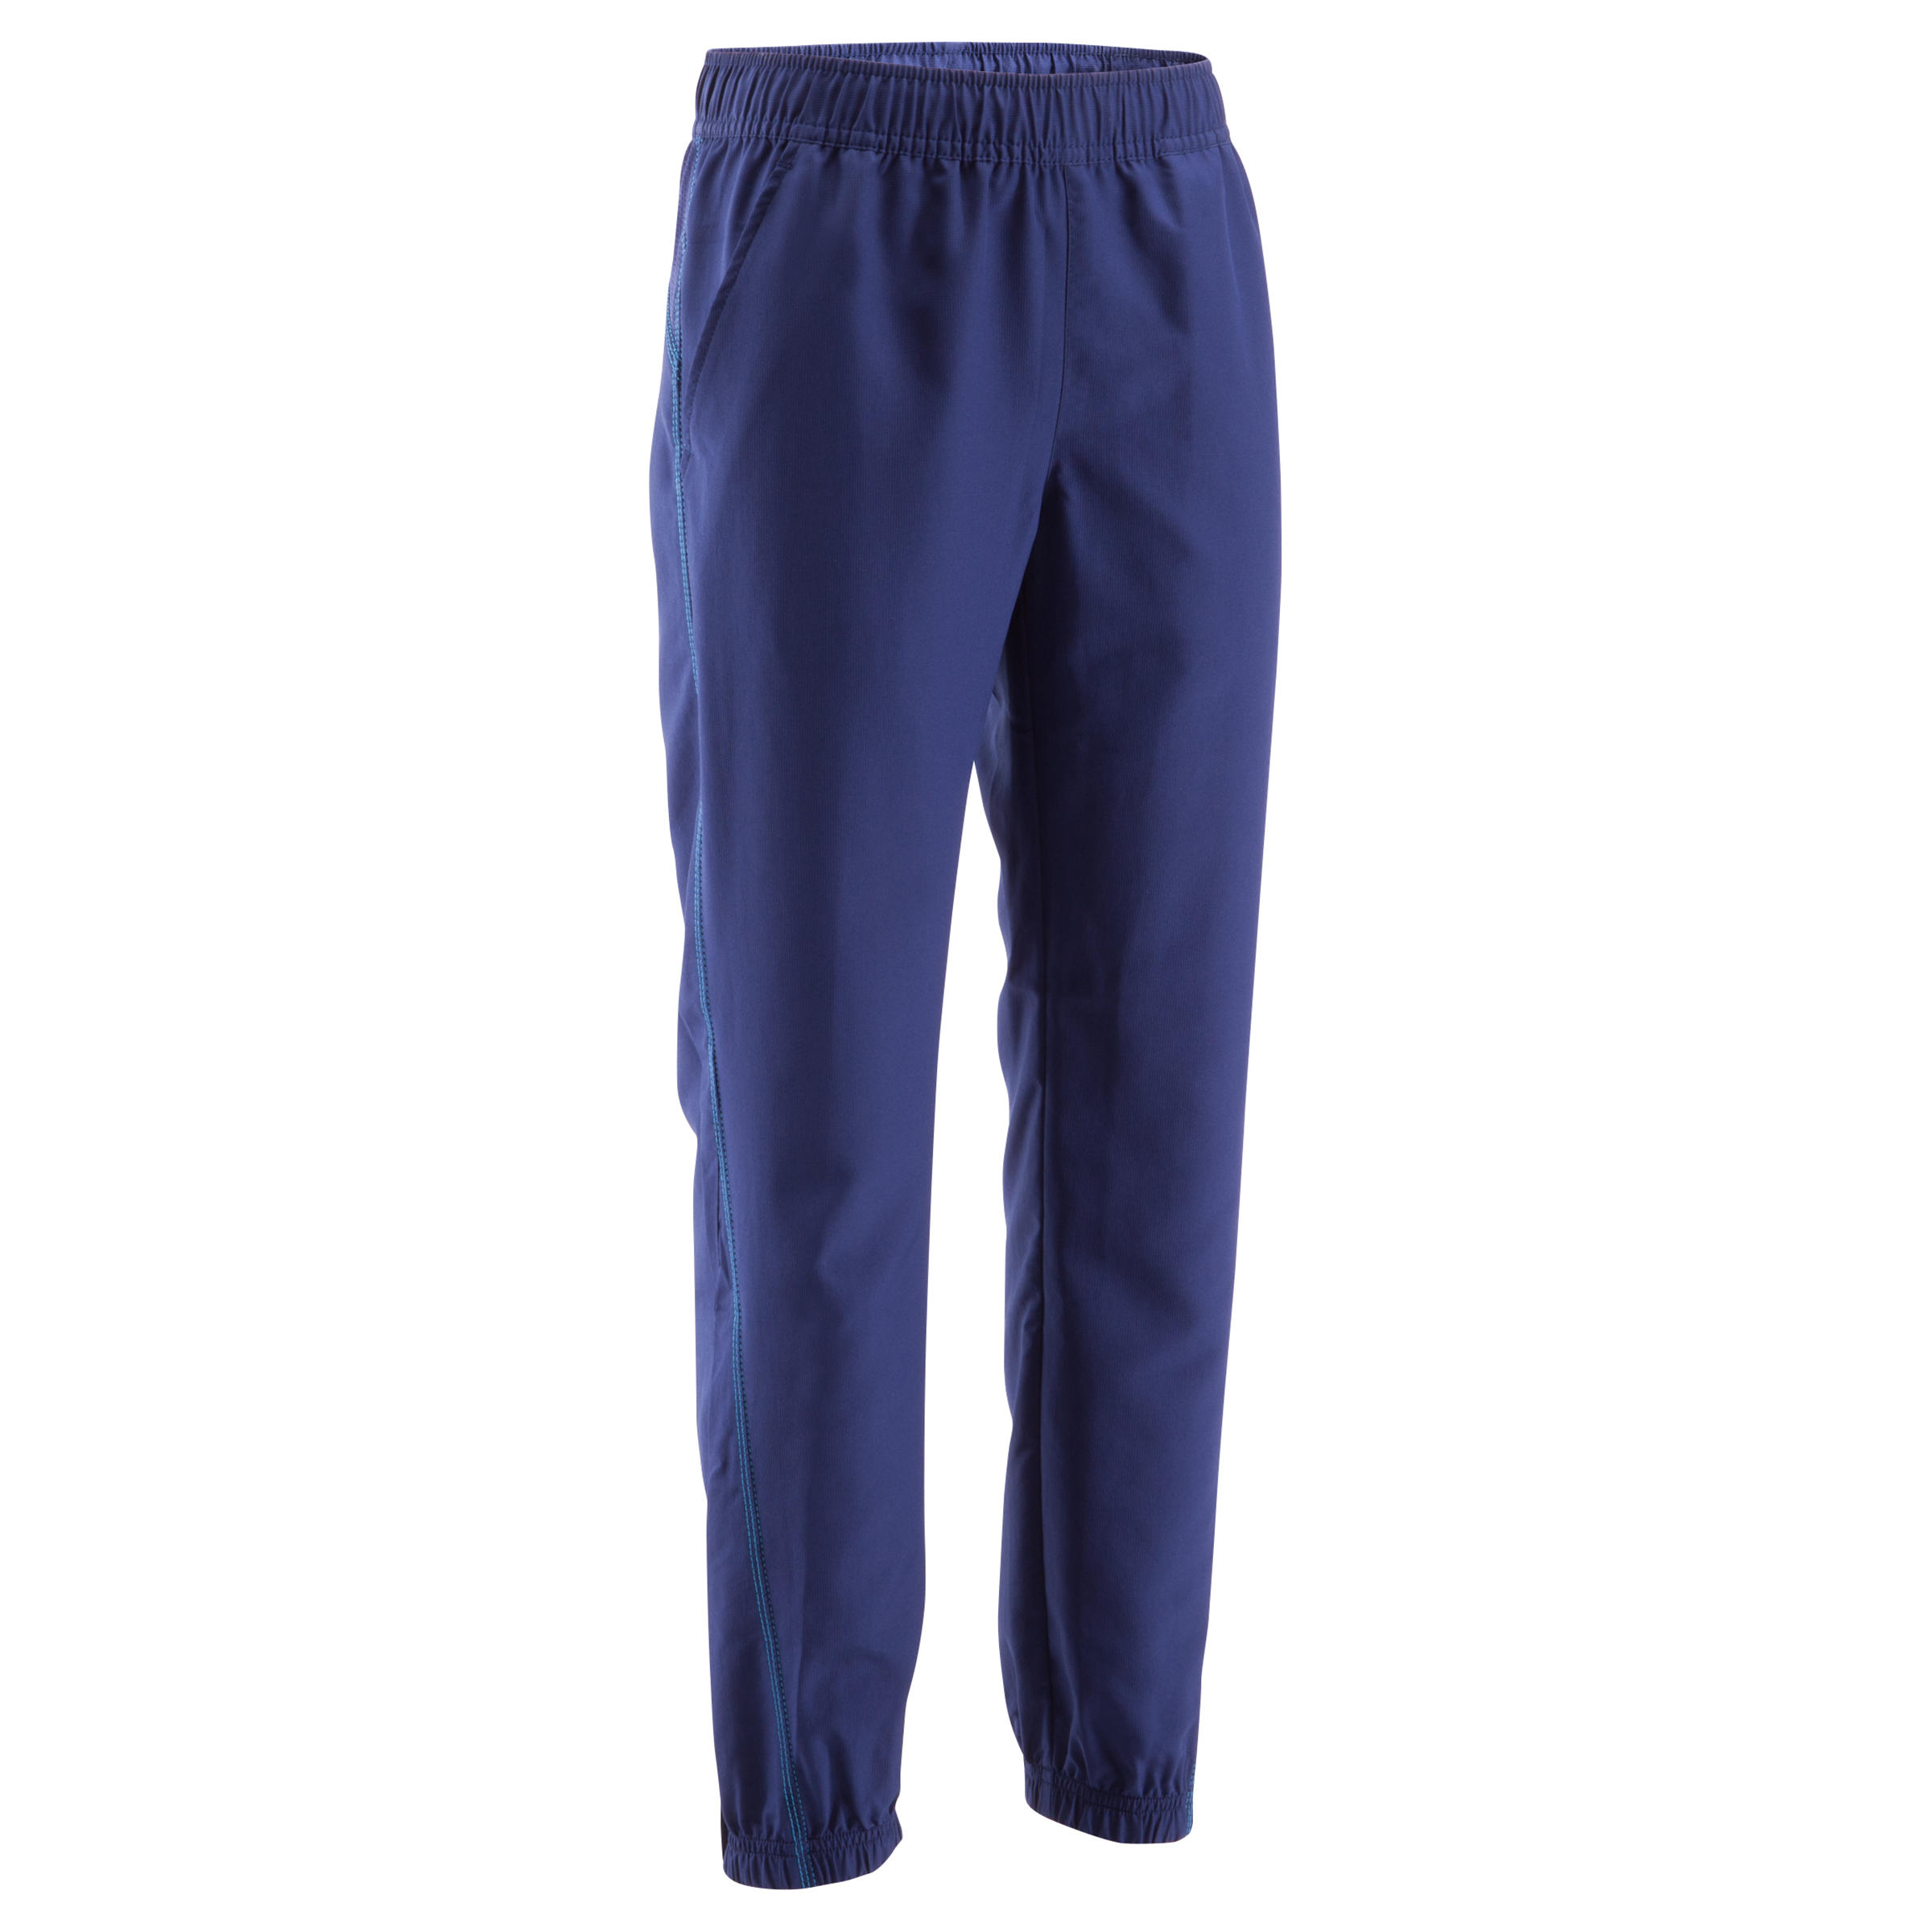 Energy+ Boys' Fitness Bottoms - Navy Blue